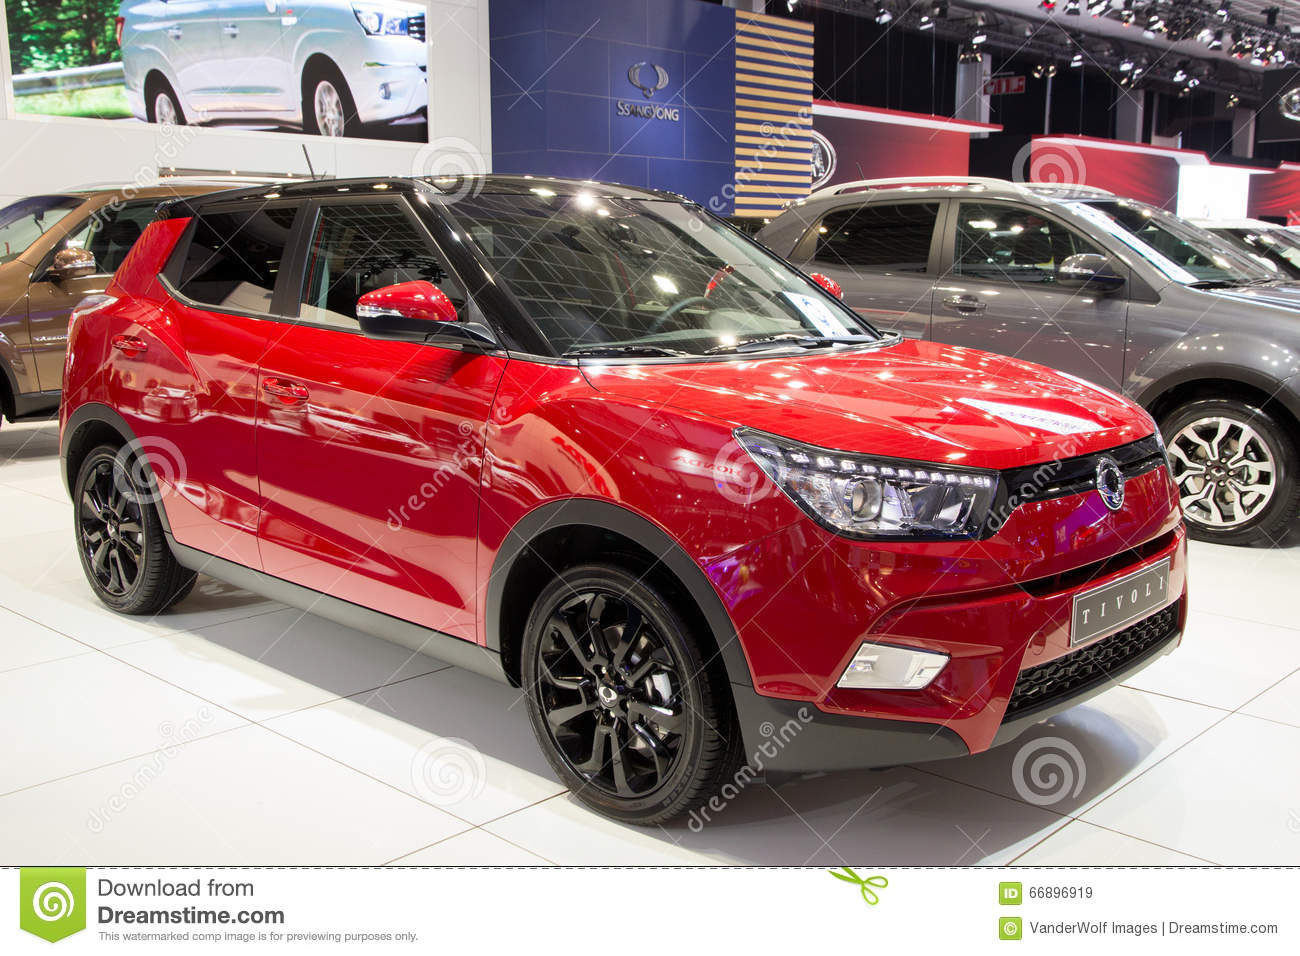 SsangYong Tivoli The New 4x4 Crossover SUV Car Editorial ...